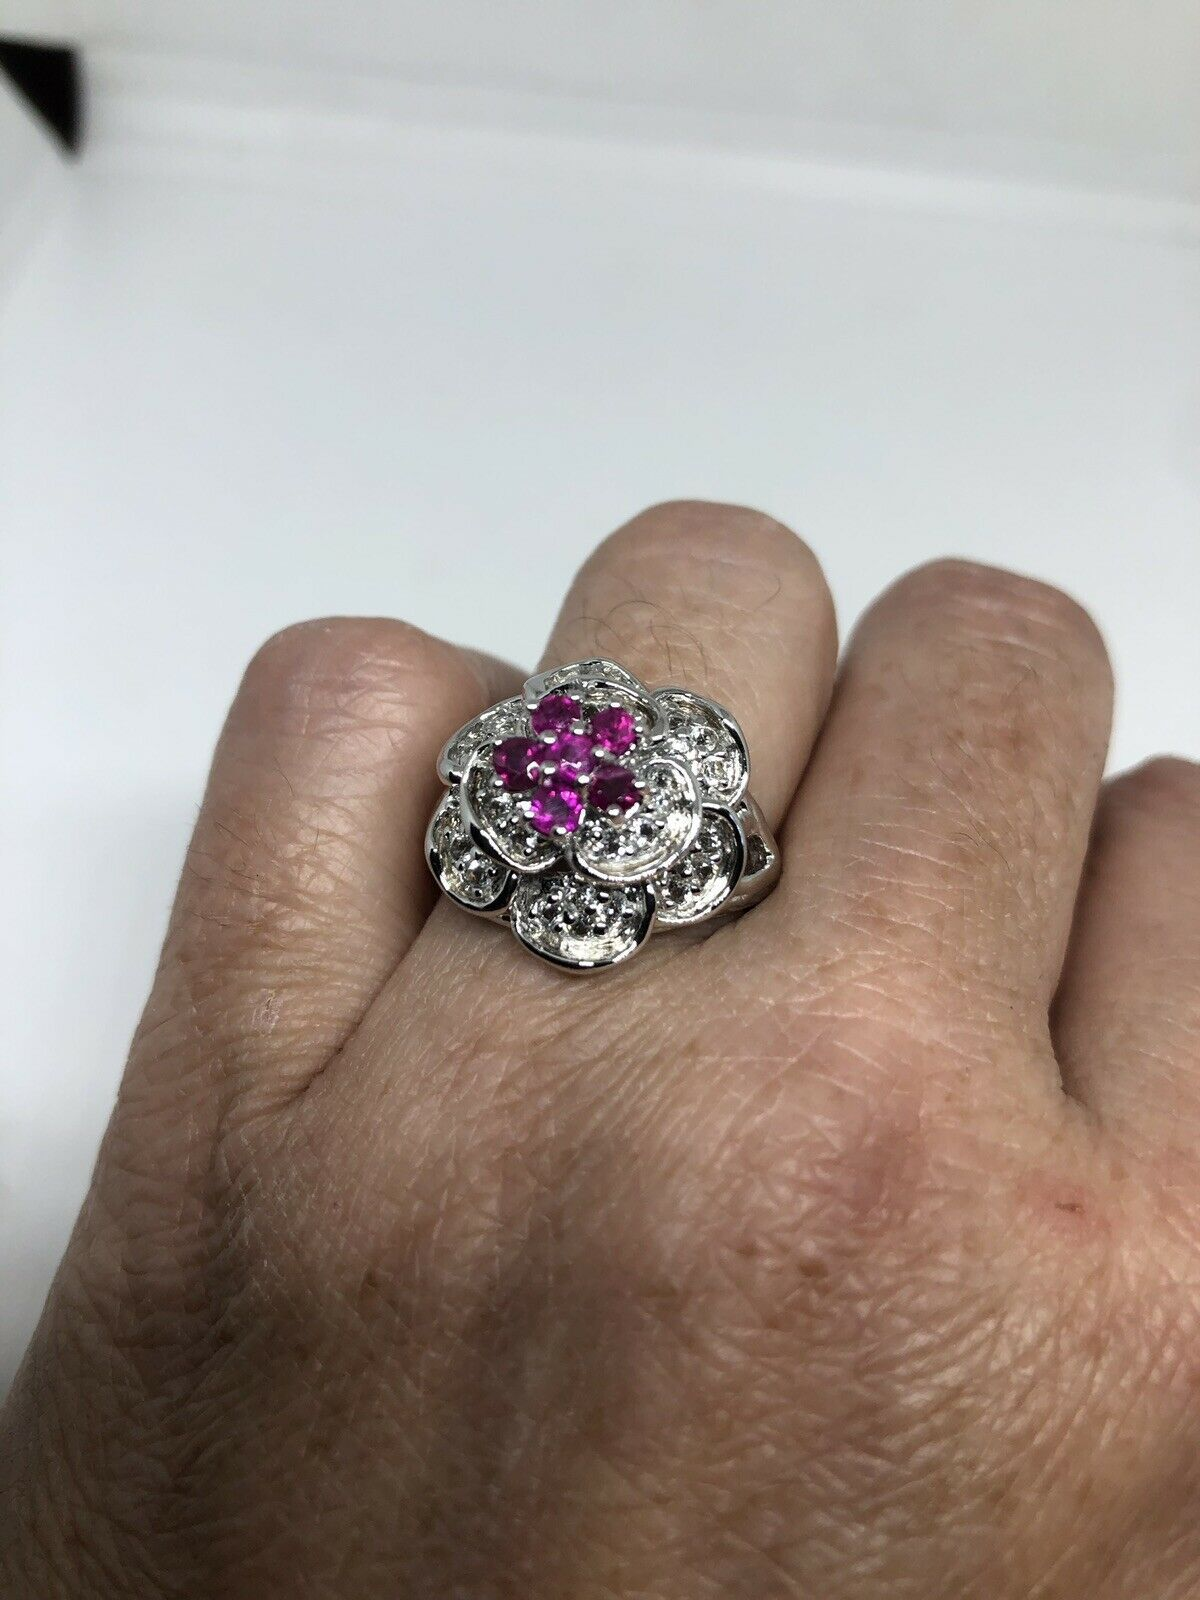 Primary image for Vintage Ruby Rose Ring White Sapphire 925 Sterling Silver Size 8